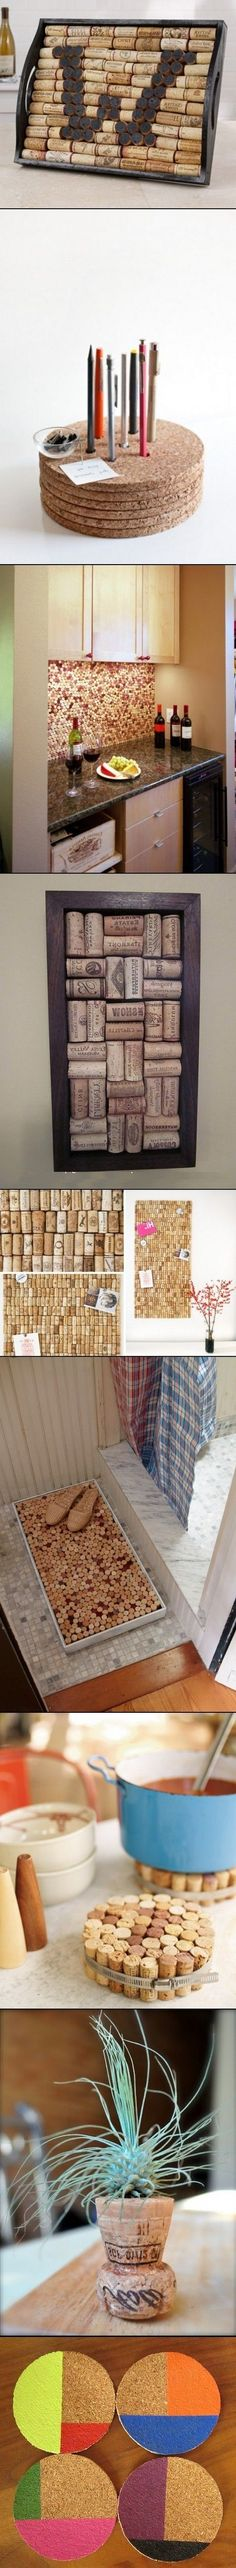 Diy crafts using old corks coisinhas outras do it yourself diy functional crafts of cork solutioingenieria Gallery